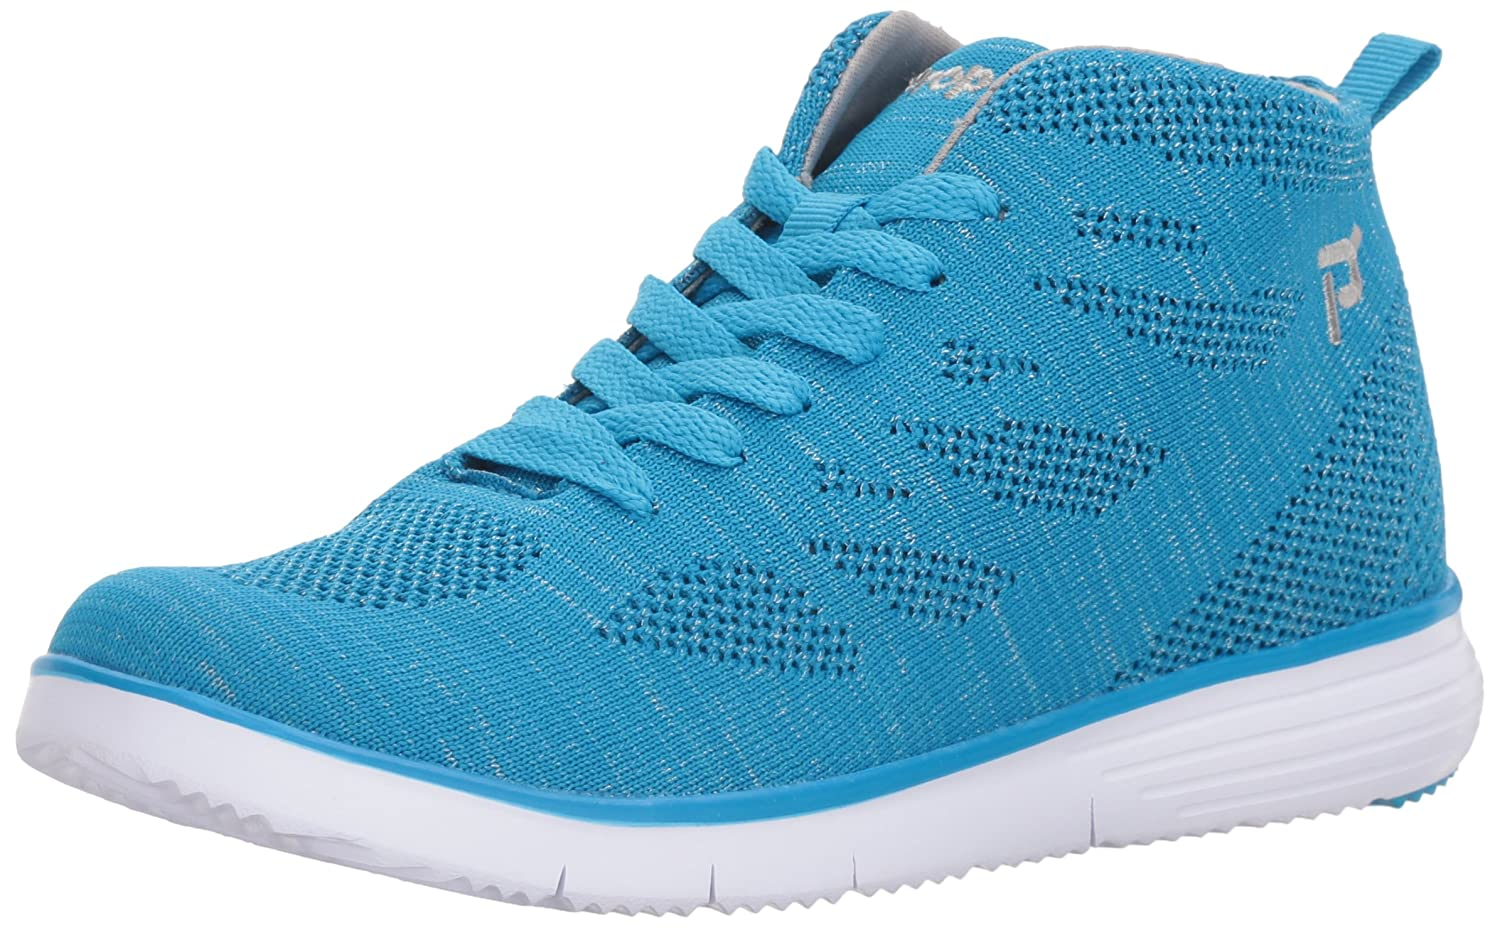 Propet Women's TravelFit Hi Walking Shoe B073DNQY59 8 N US|Pacific/Silver